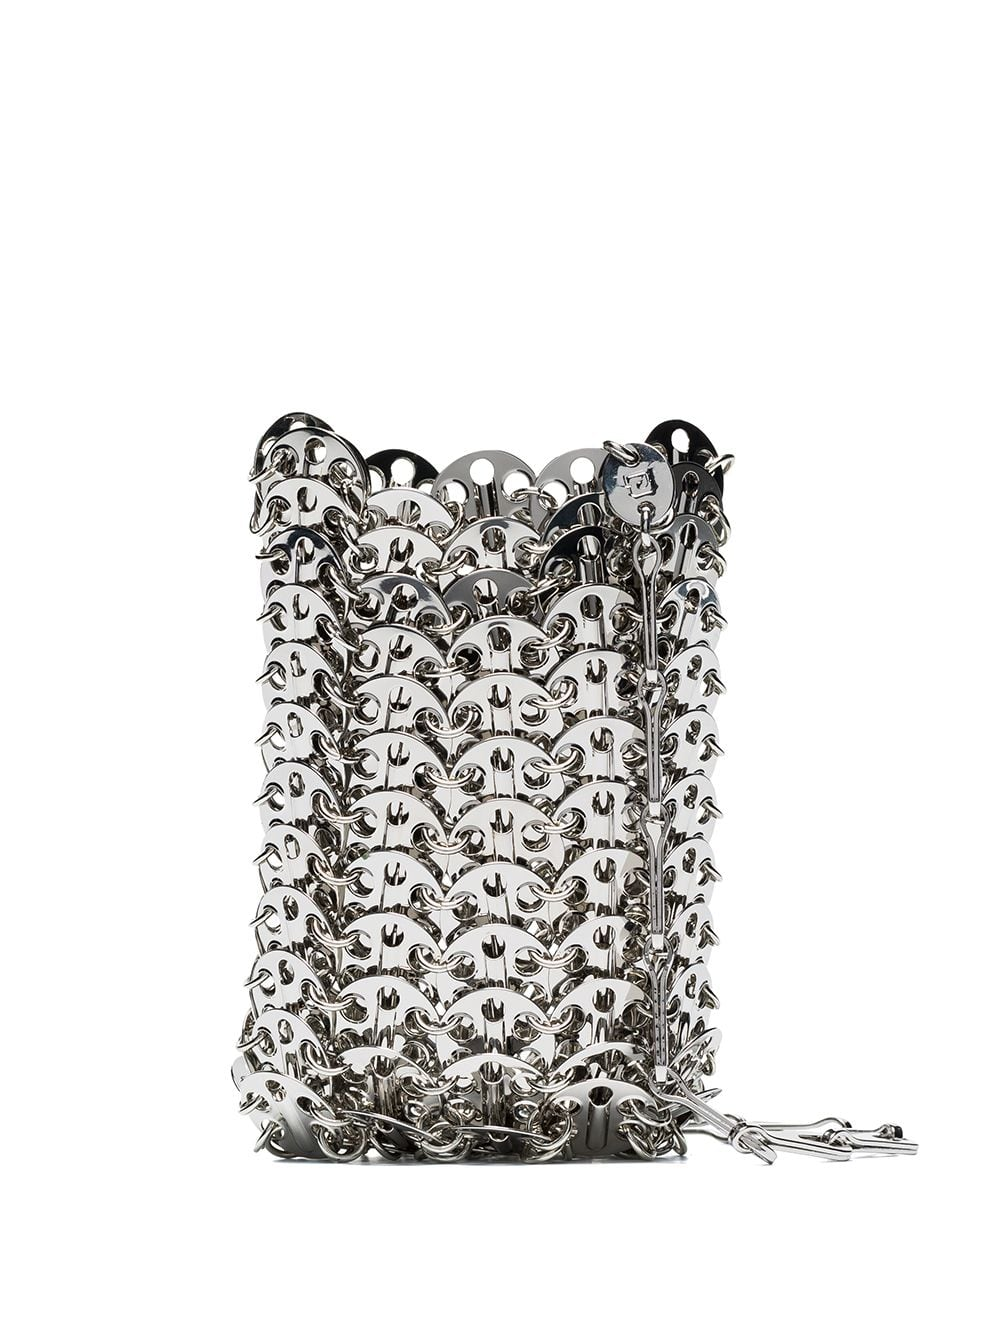 PACO RABANNE WOMEN MINI 1969 ICONIC METALLIC DISC BAG